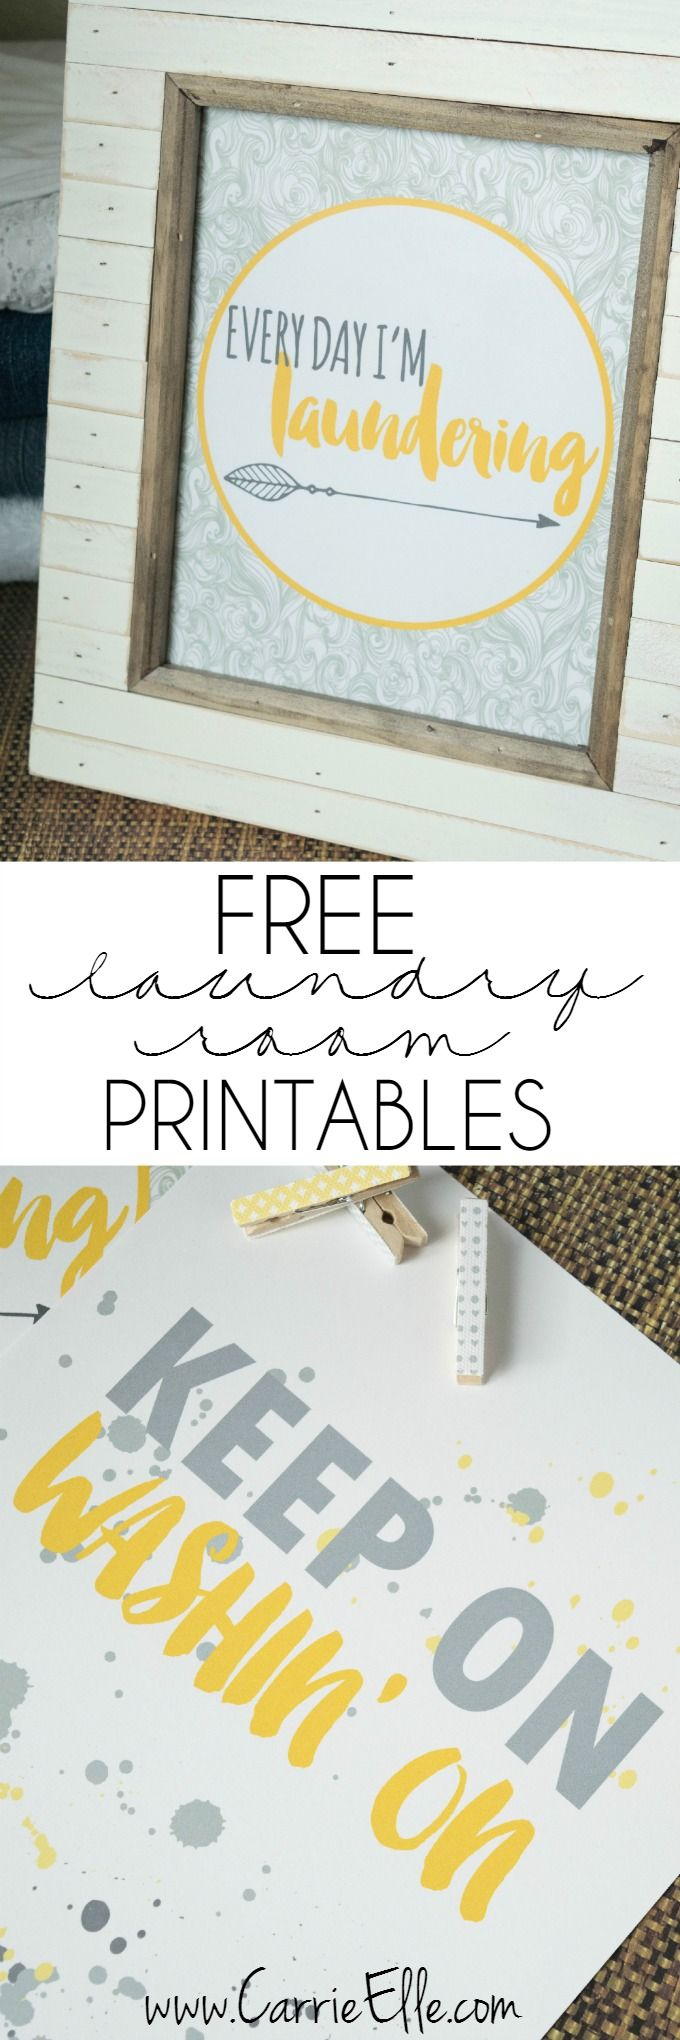 Free laundry room printables and 5 laundry room accessories every laundry room needs!